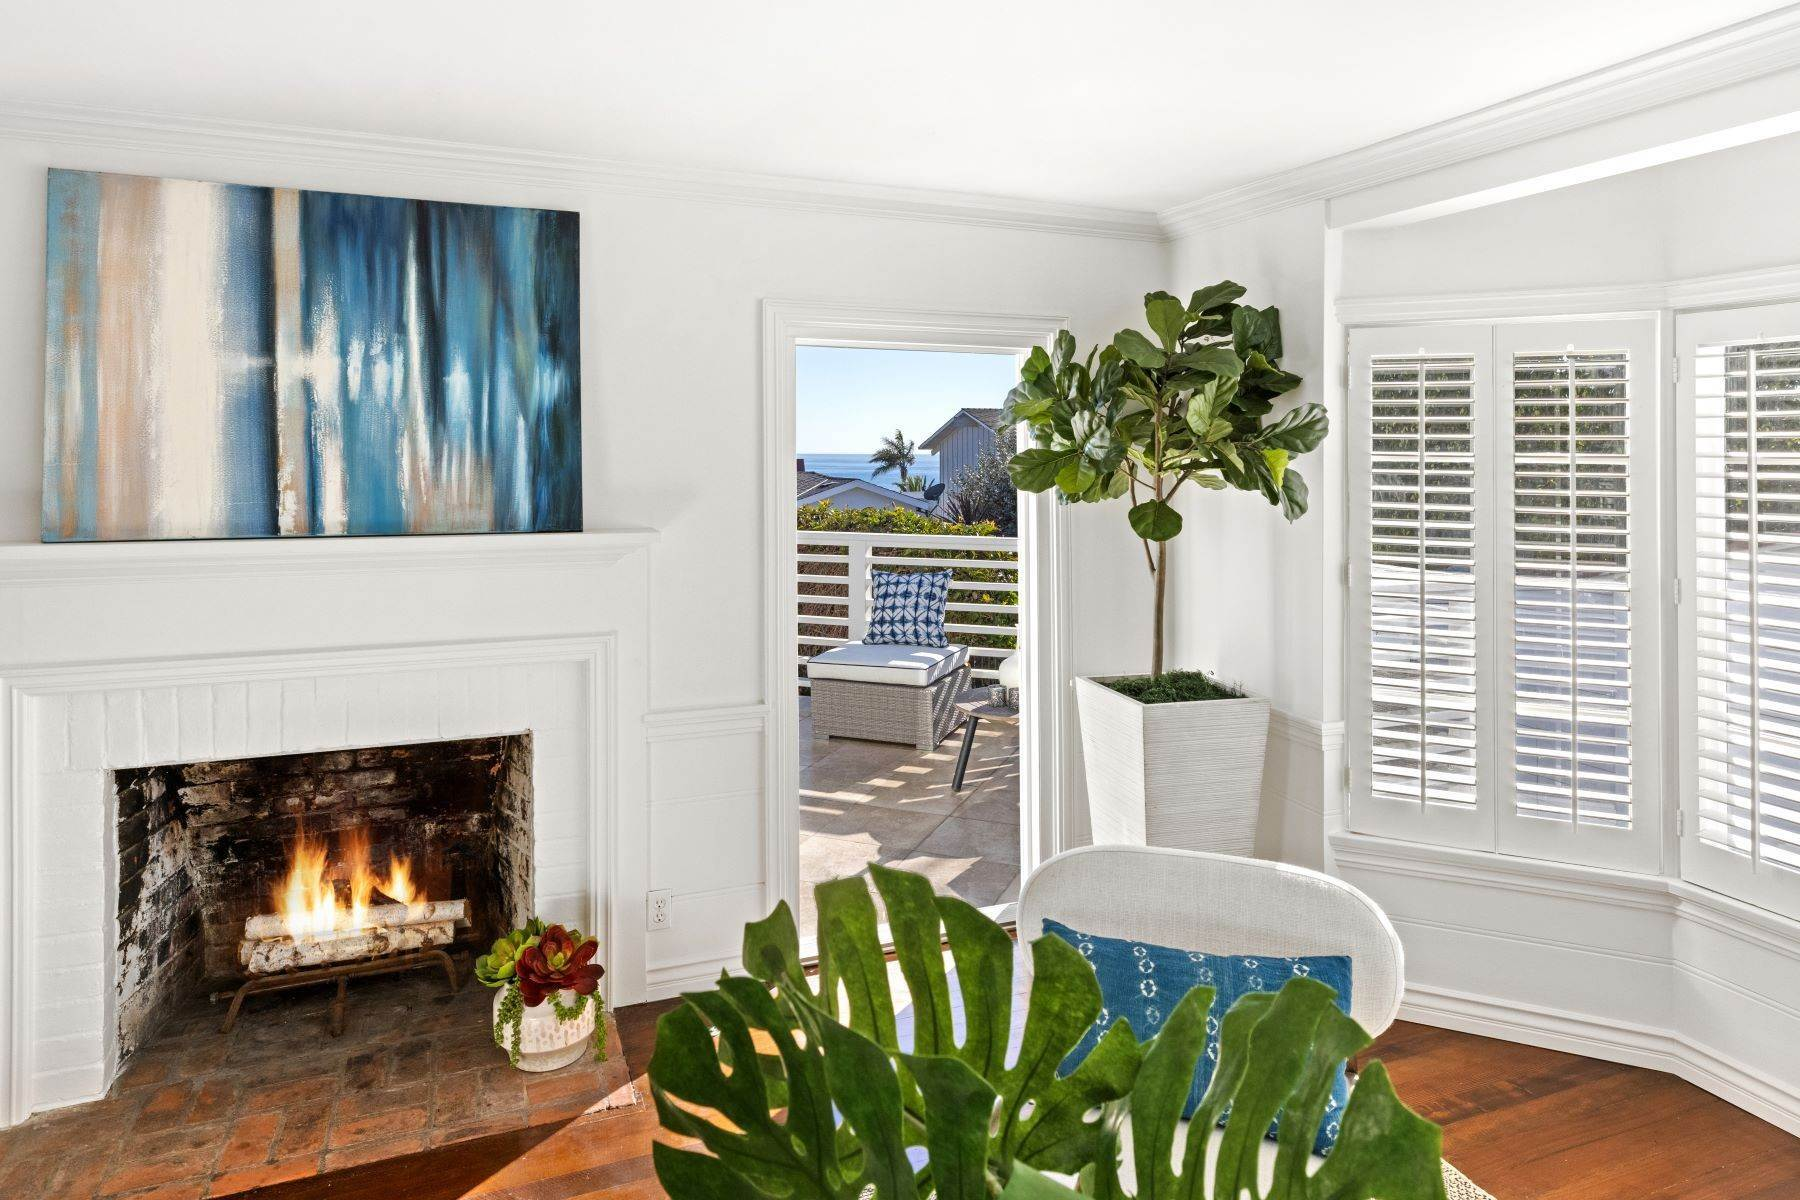 10. Single Family Homes for Sale at 24 South Portola, Laguna Beach, CA 92651 24 South Portola Laguna Beach, California 92651 United States